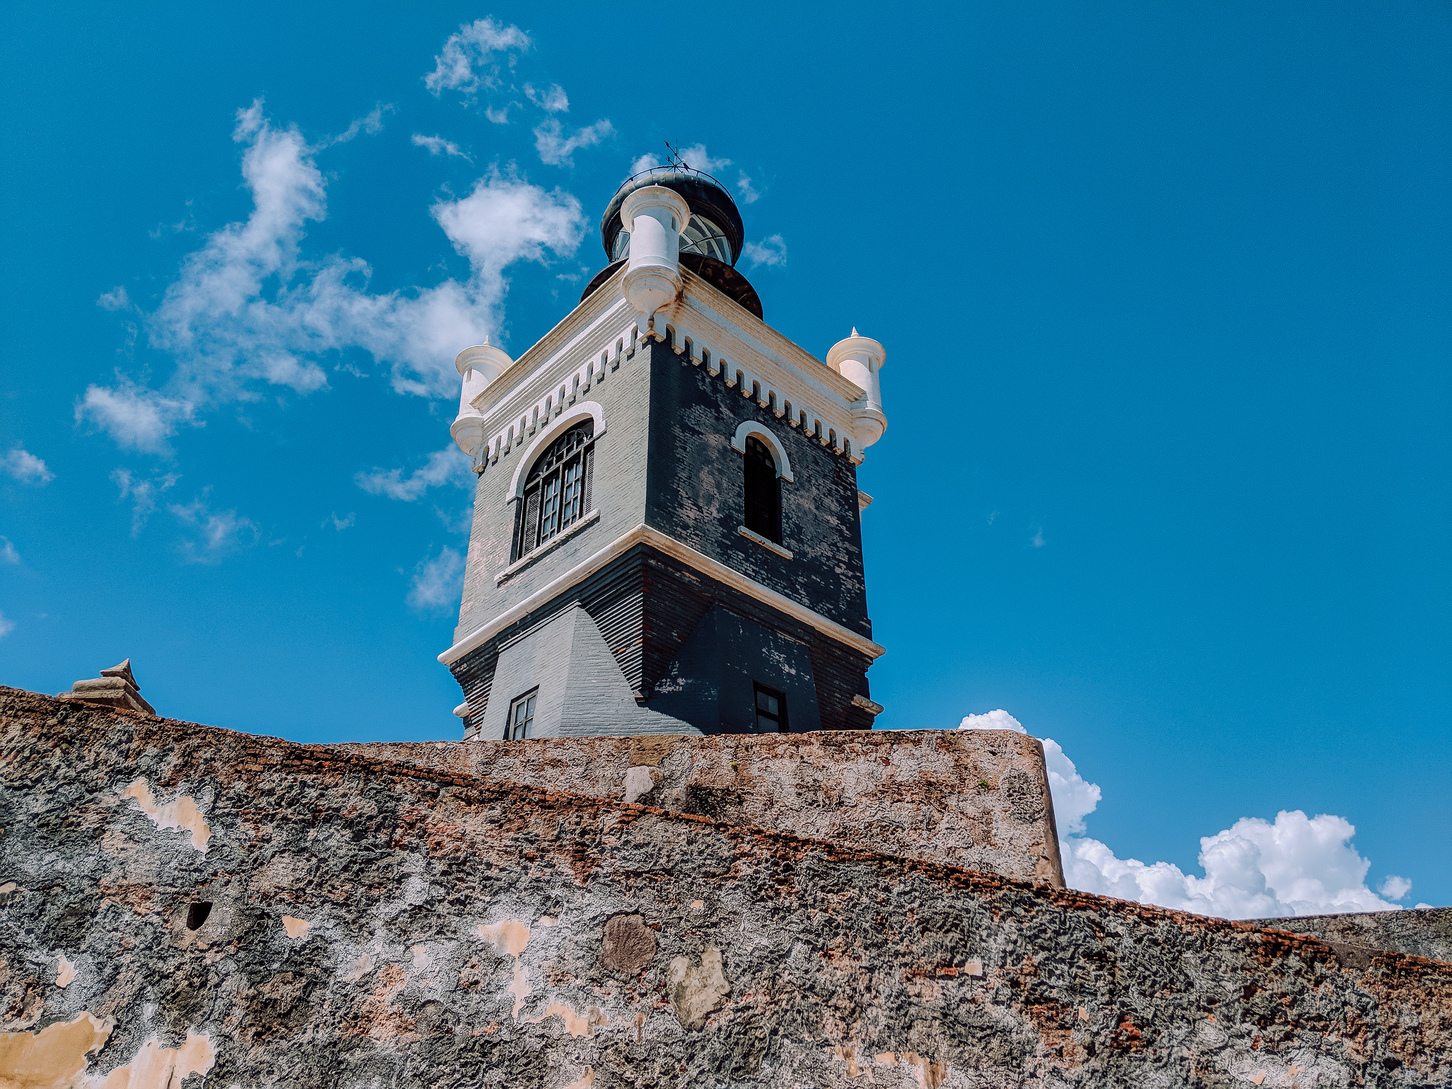 The lighthouse tower at El Morro